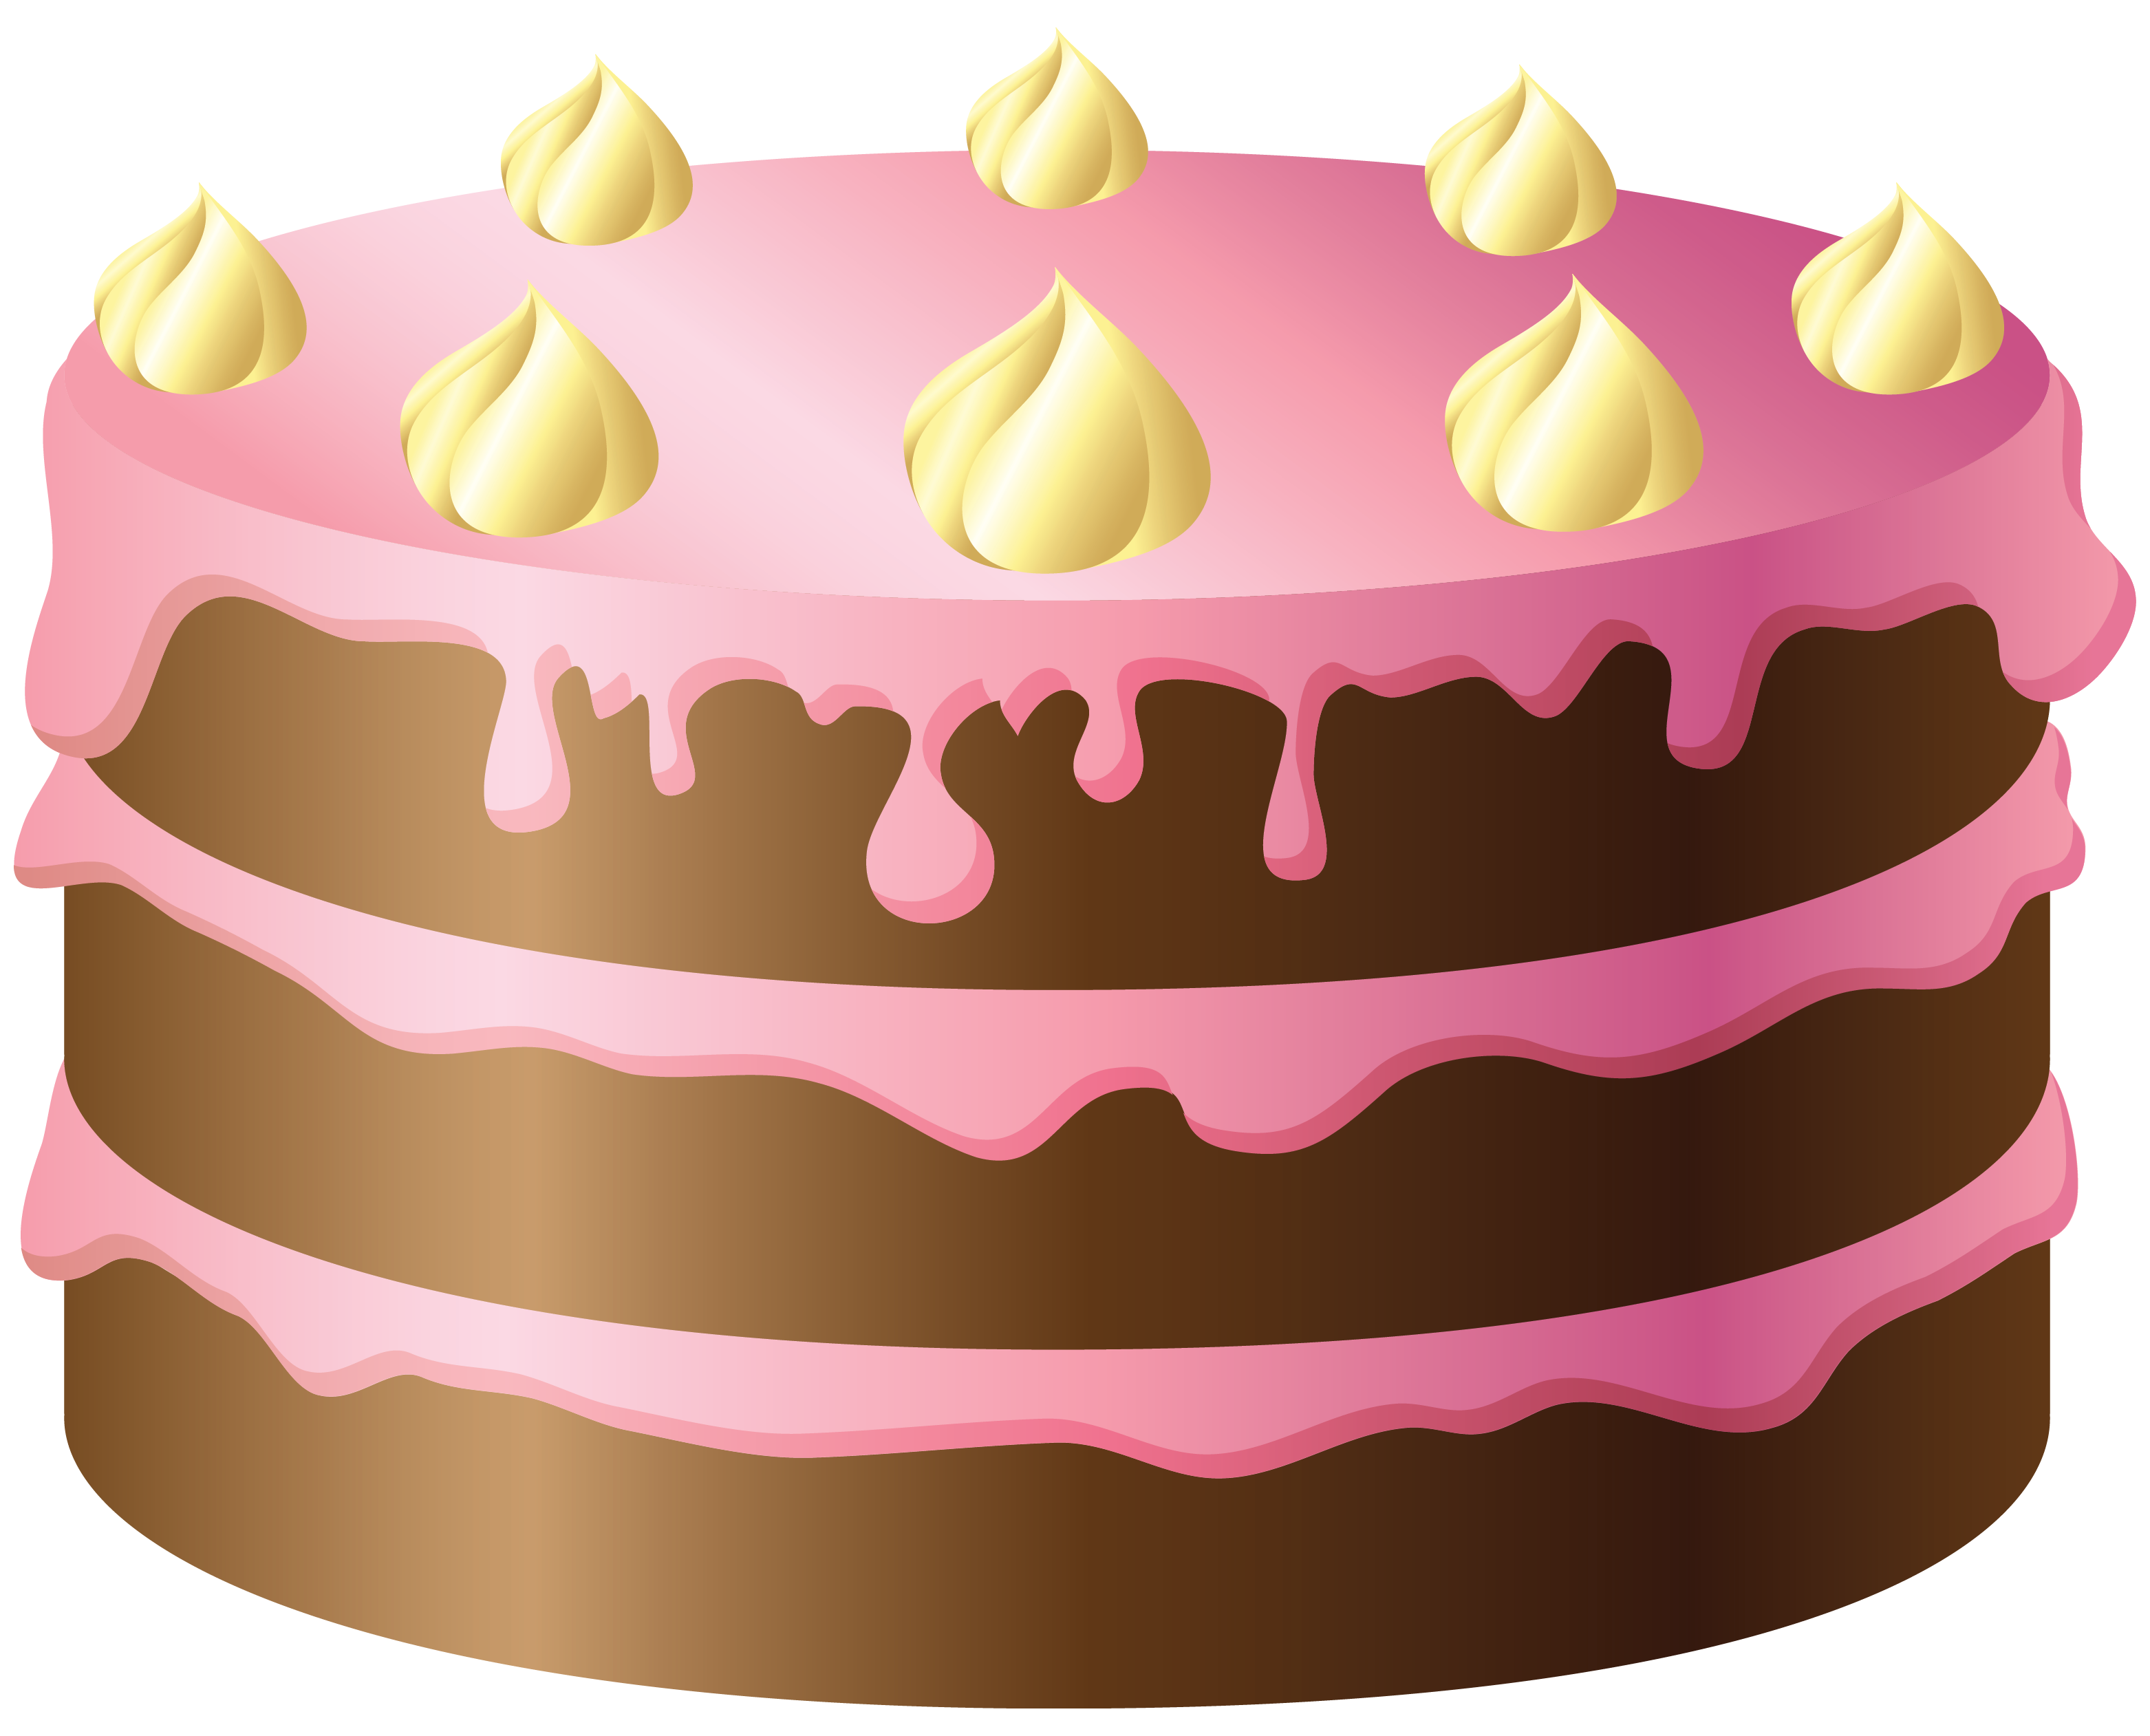 Clipart heart cake. Chocolate baking free collection